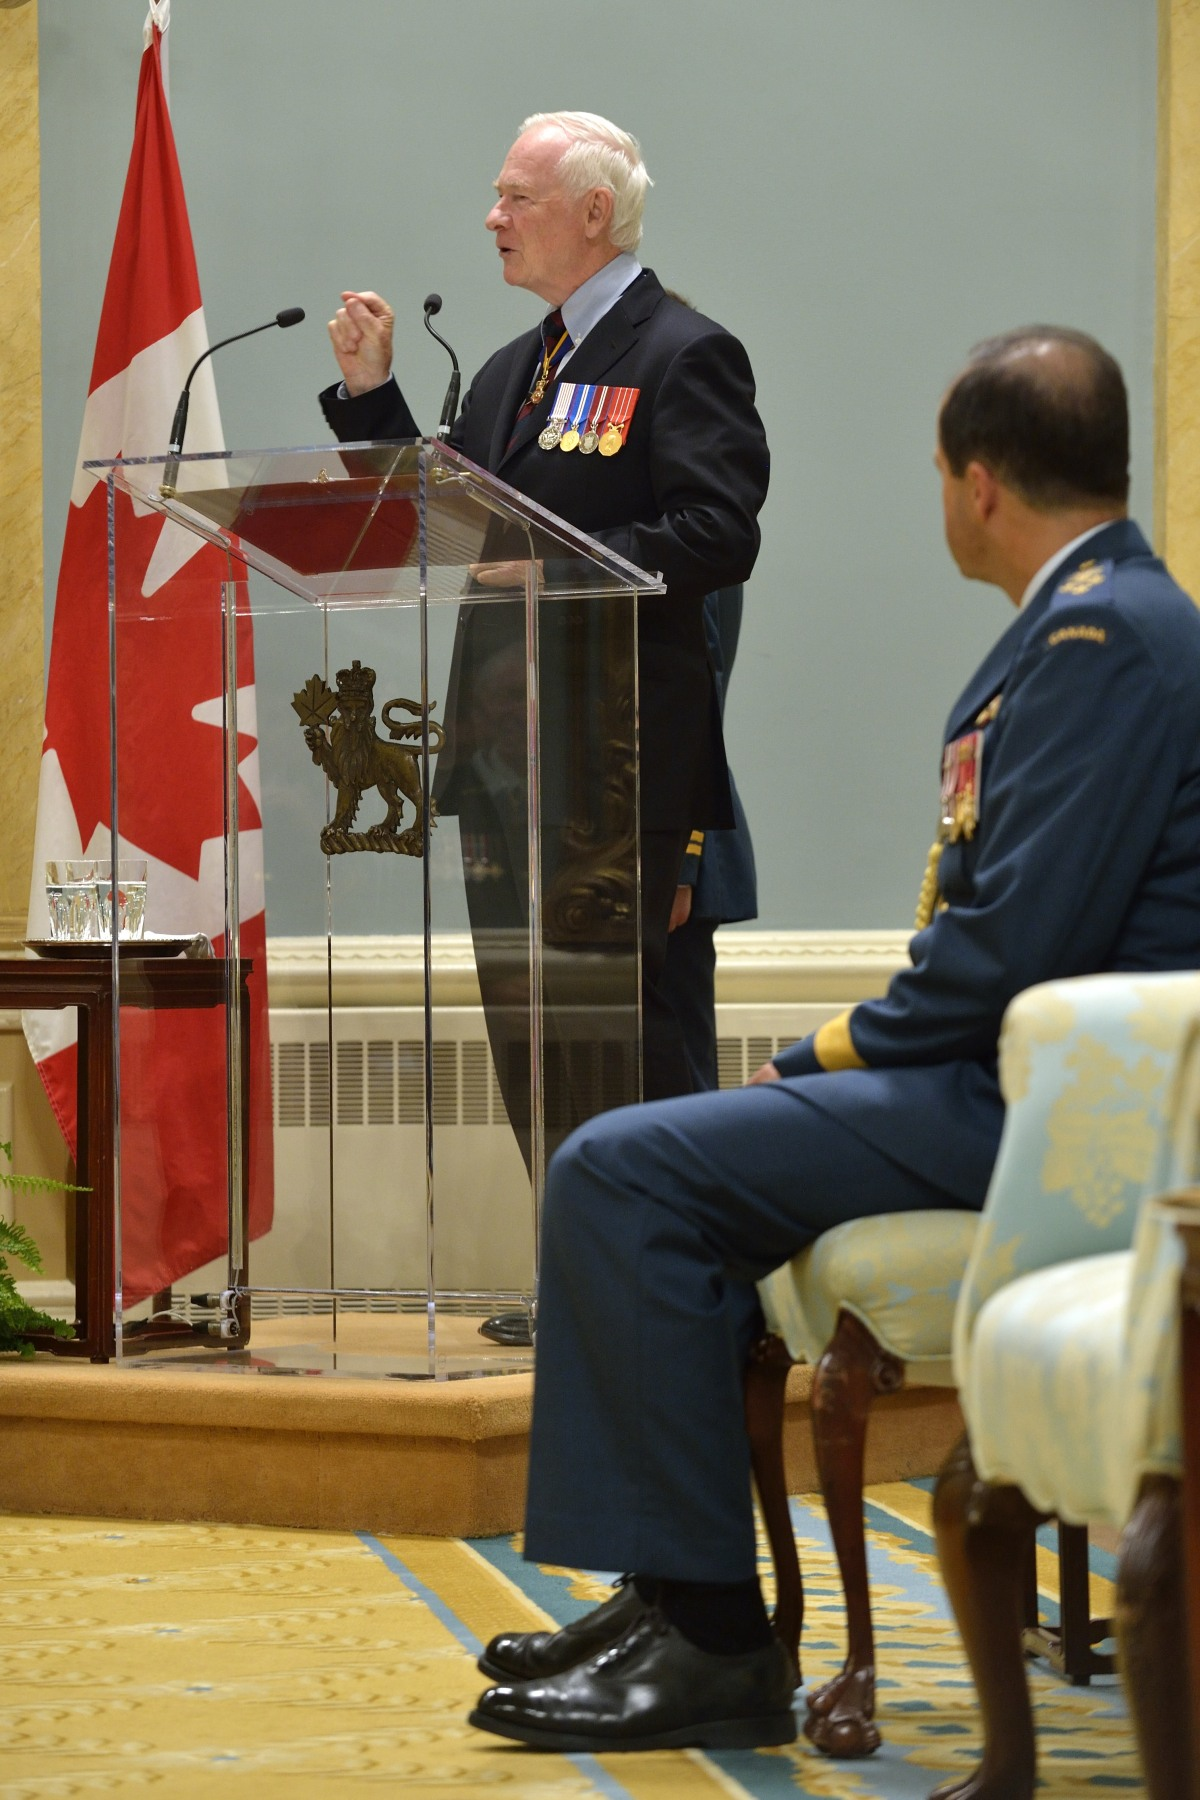 """I am proud to call myself commander-in-chief, but I find it an even greater honour when I am so named by a member of our Canadian Armed Forces,"" said His Excellency. ""That is because without you, without what you do for our country, day in and day out, there would be no commander-in-chief. And without you and what you have done throughout our history, our very country would not look the same."""